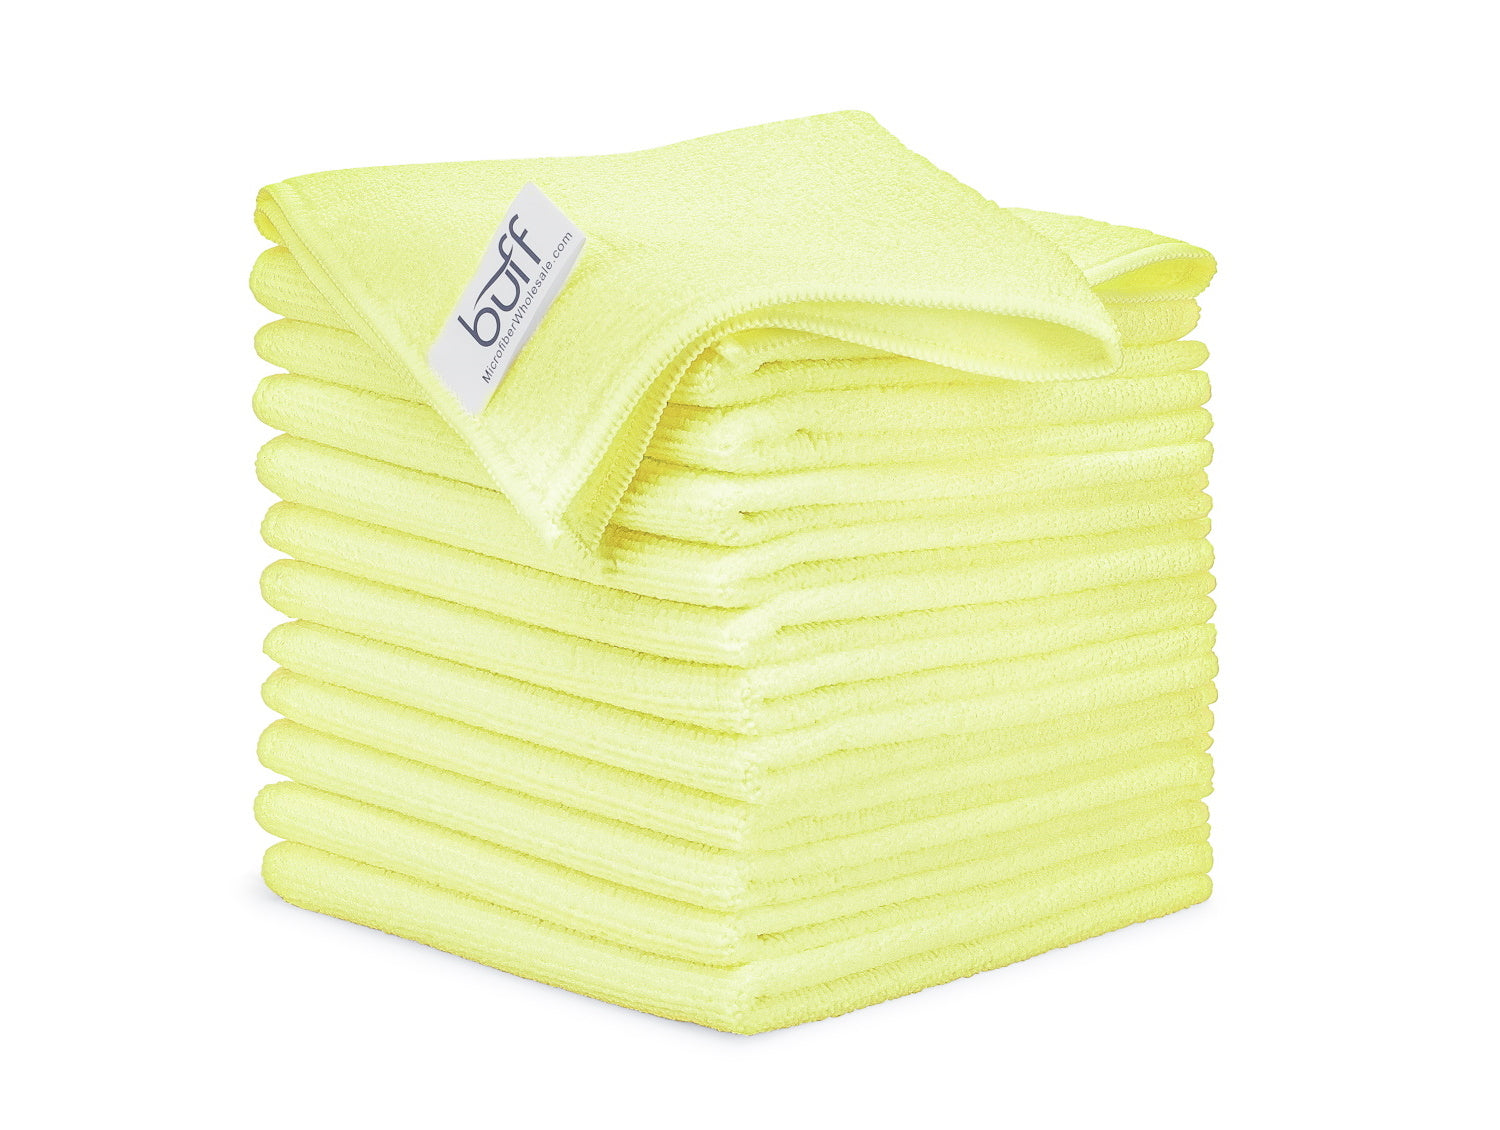 Yellow Microfiber Cleaning Cloths 12 Pack